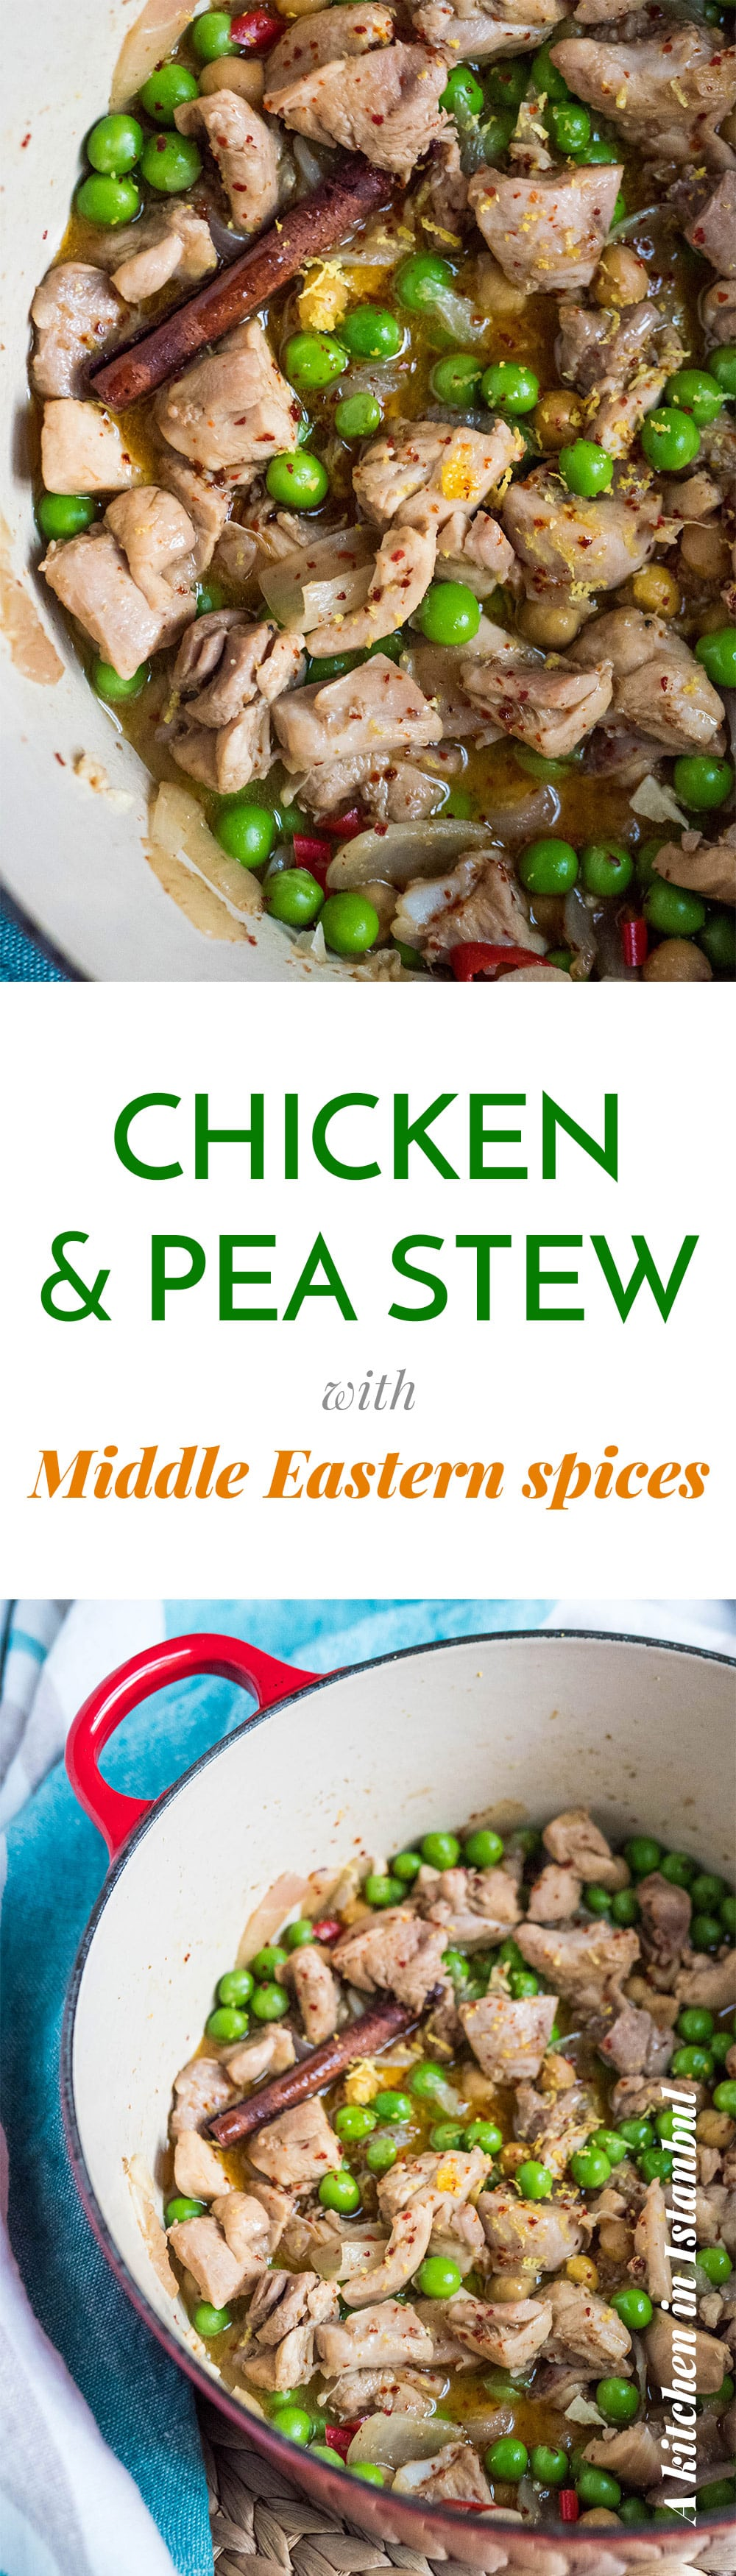 Chicken and pea stew with Middle Eastern spice - recipe / A kitchen in Istanbul